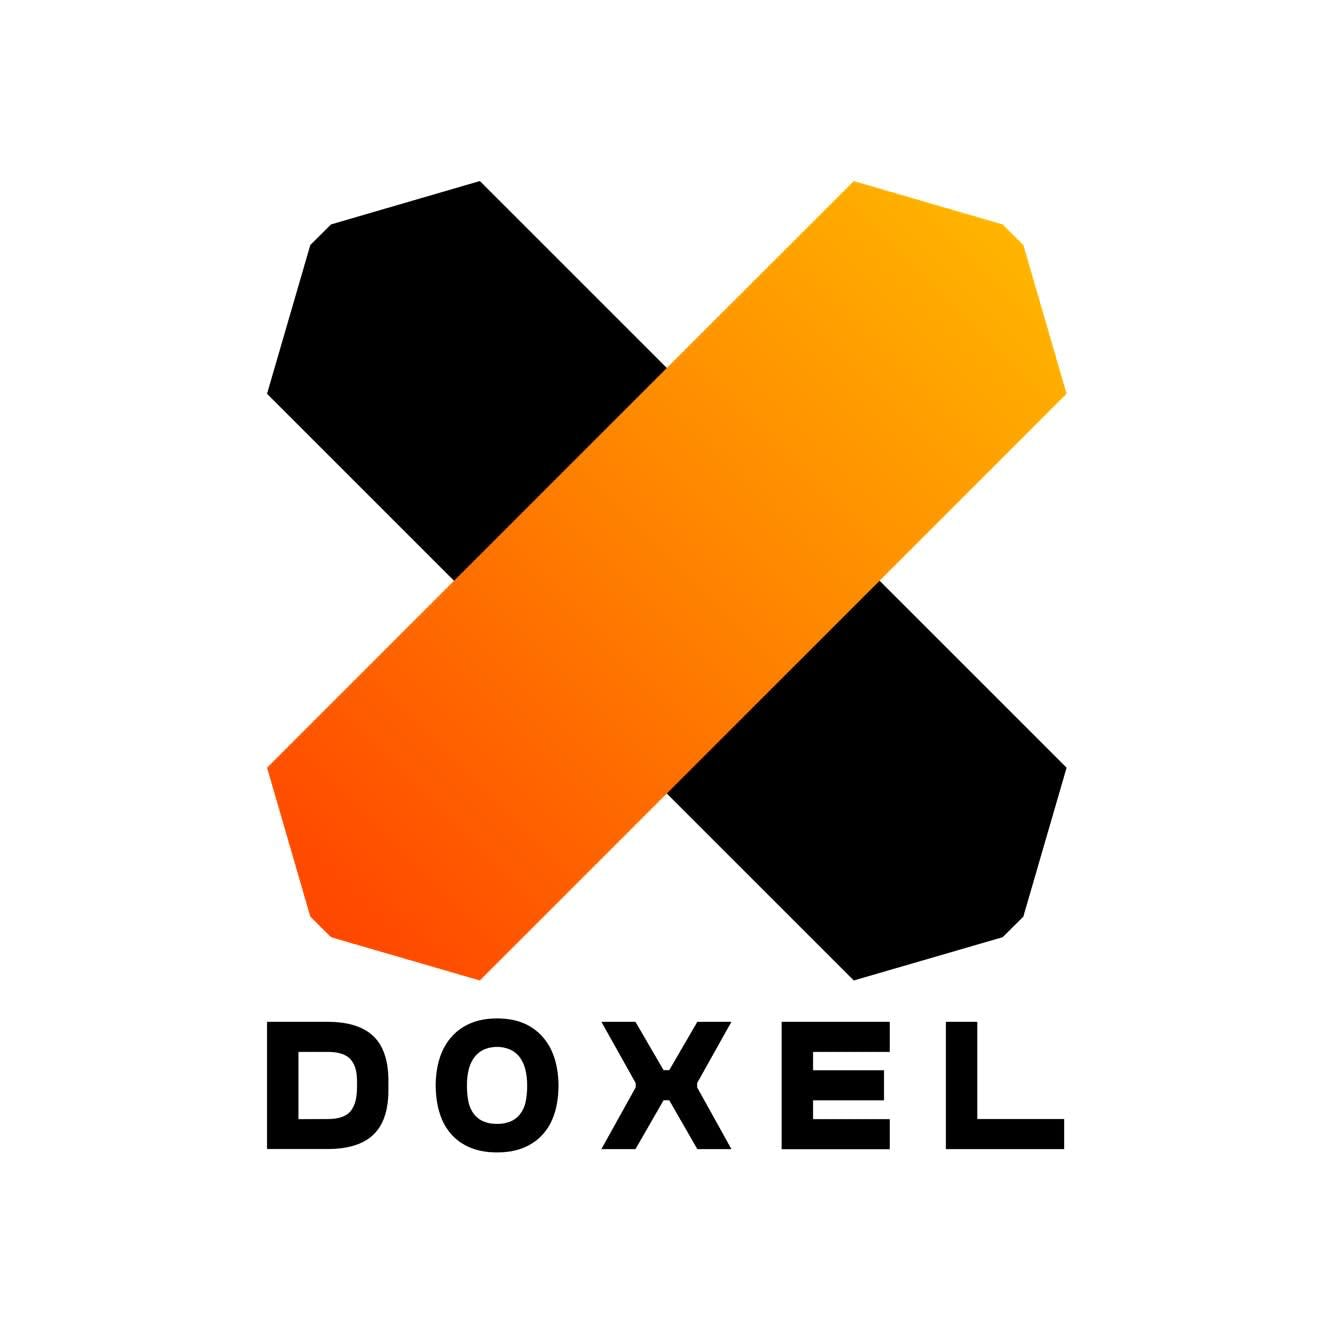 Doxel